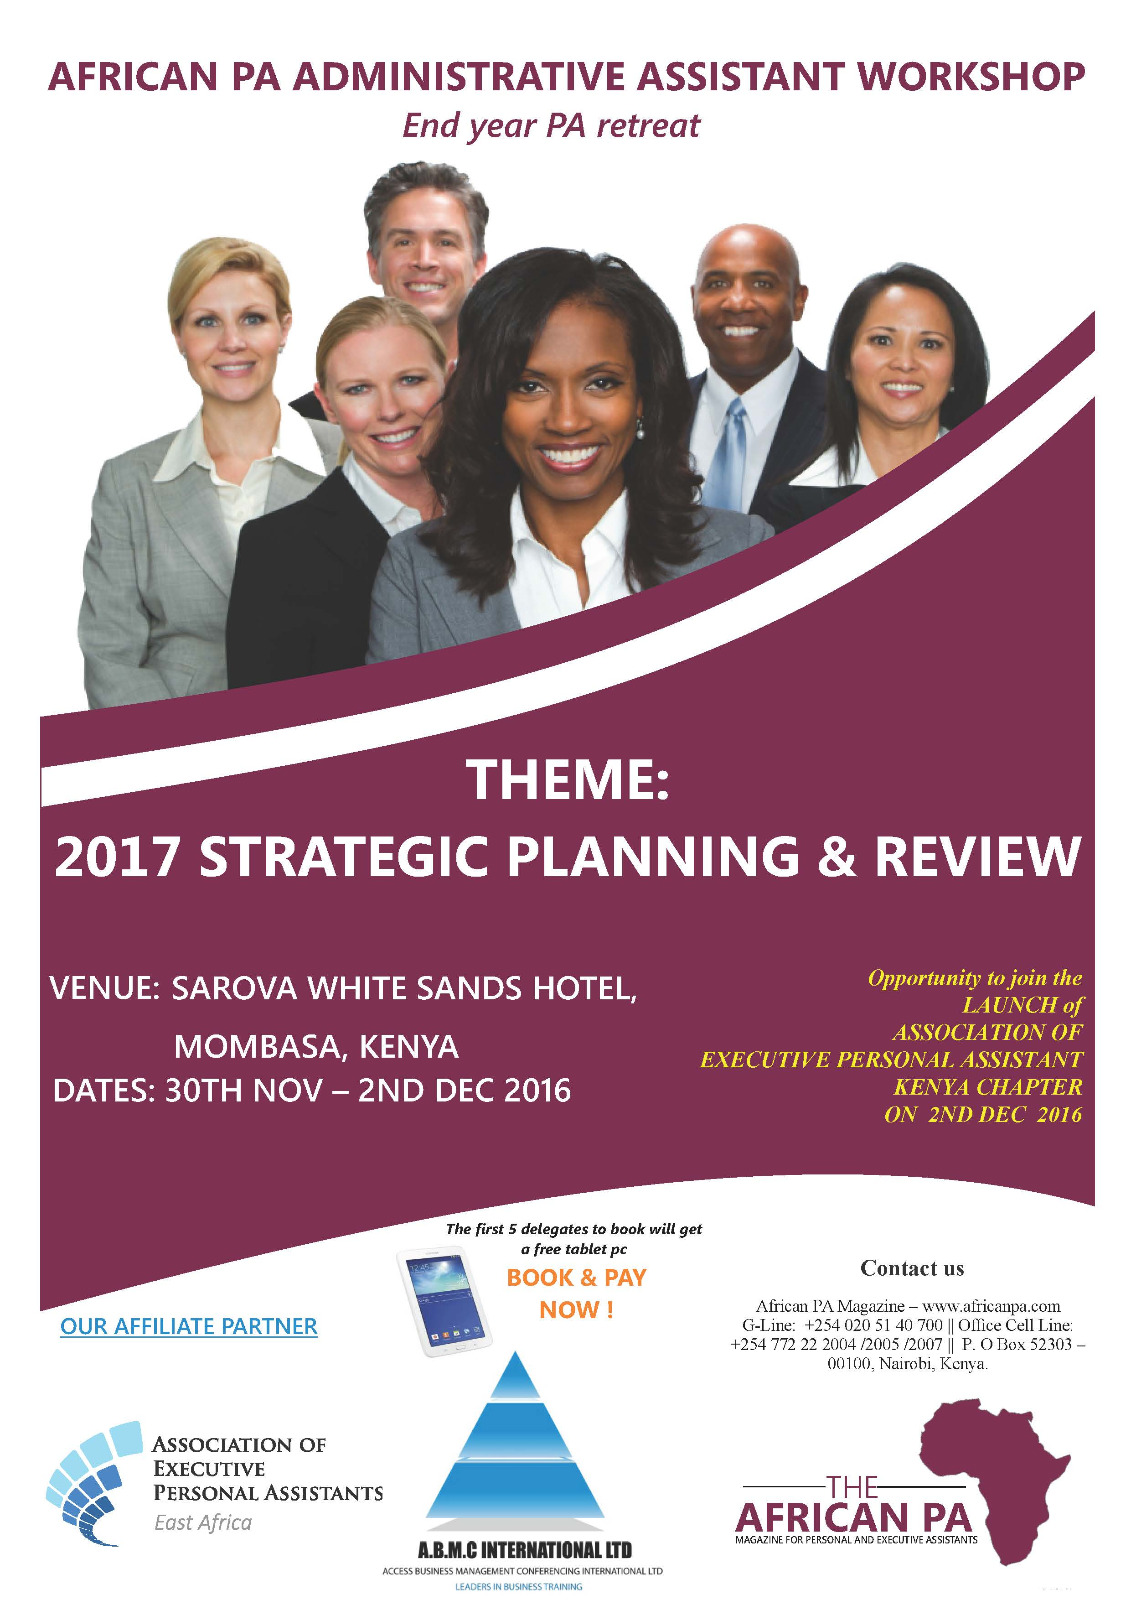 african pa administrative assistant workshop